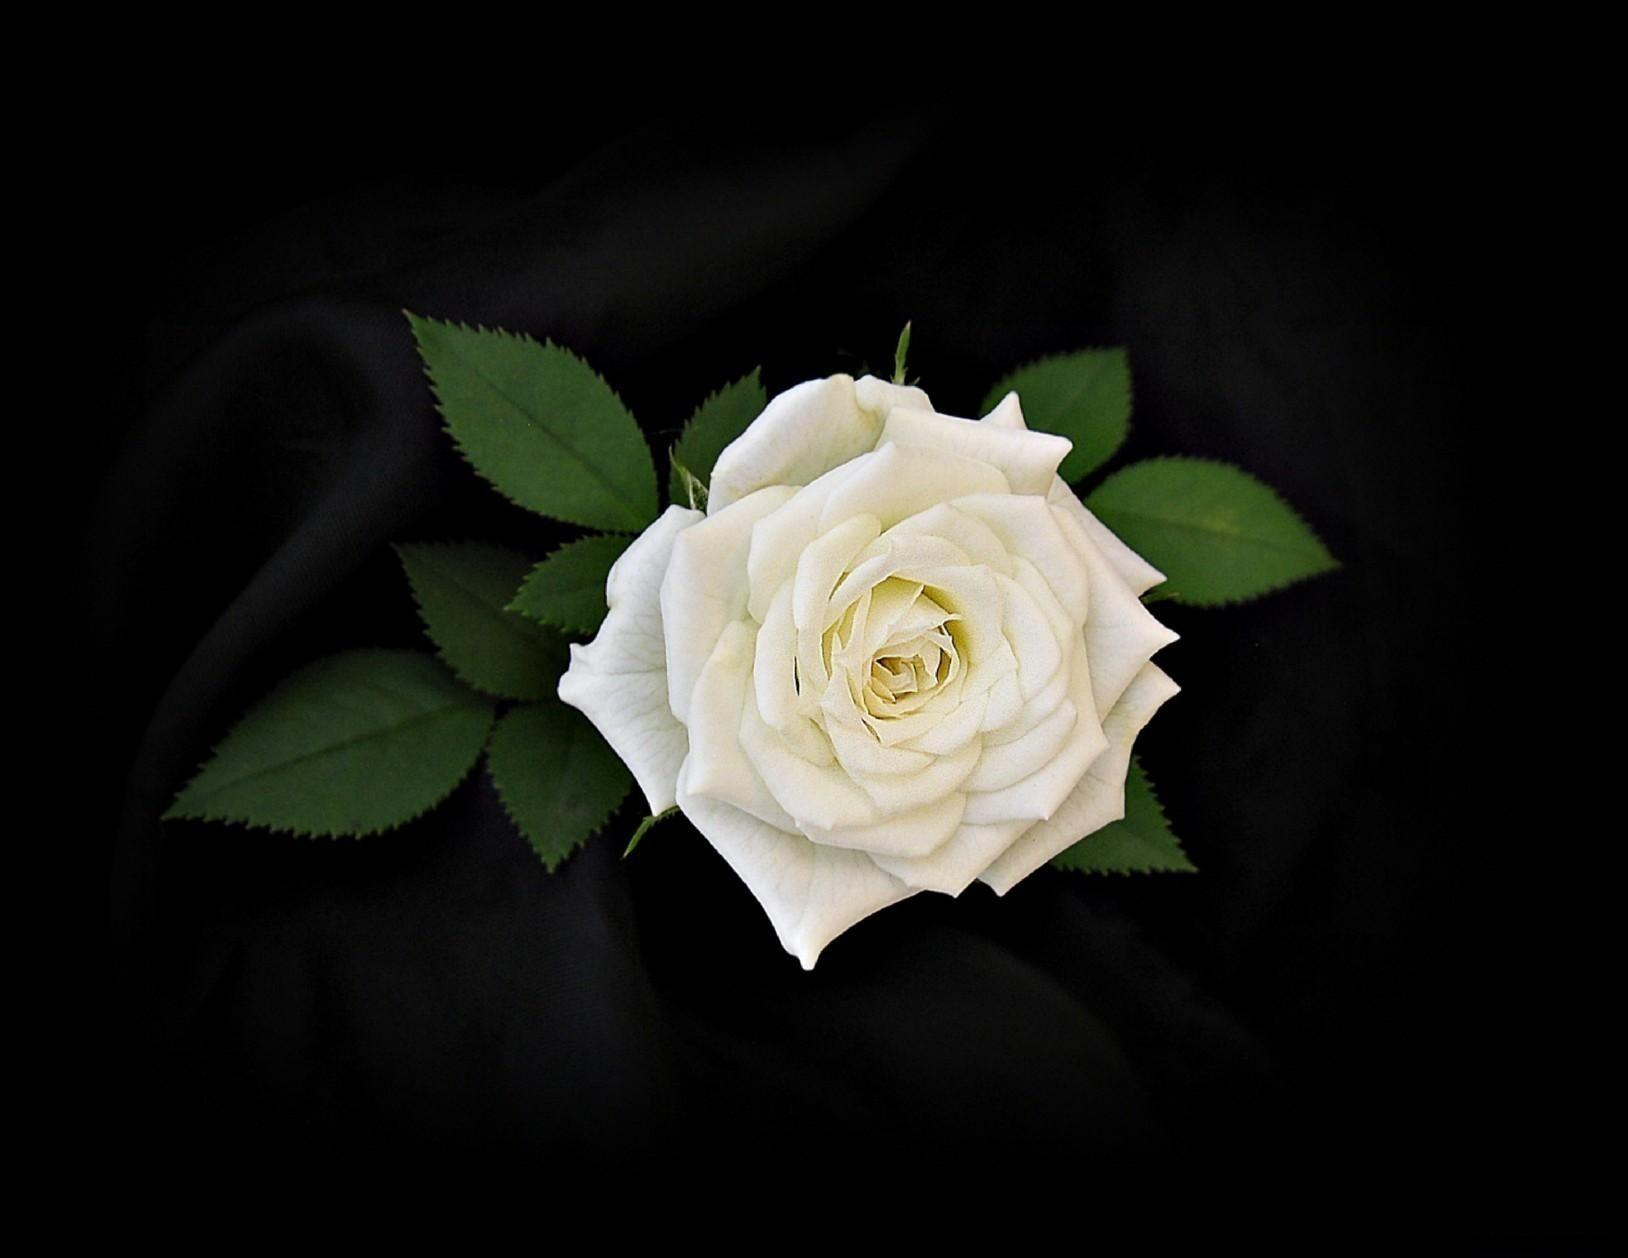 Wallpapers For > White Roses Black Backgrounds